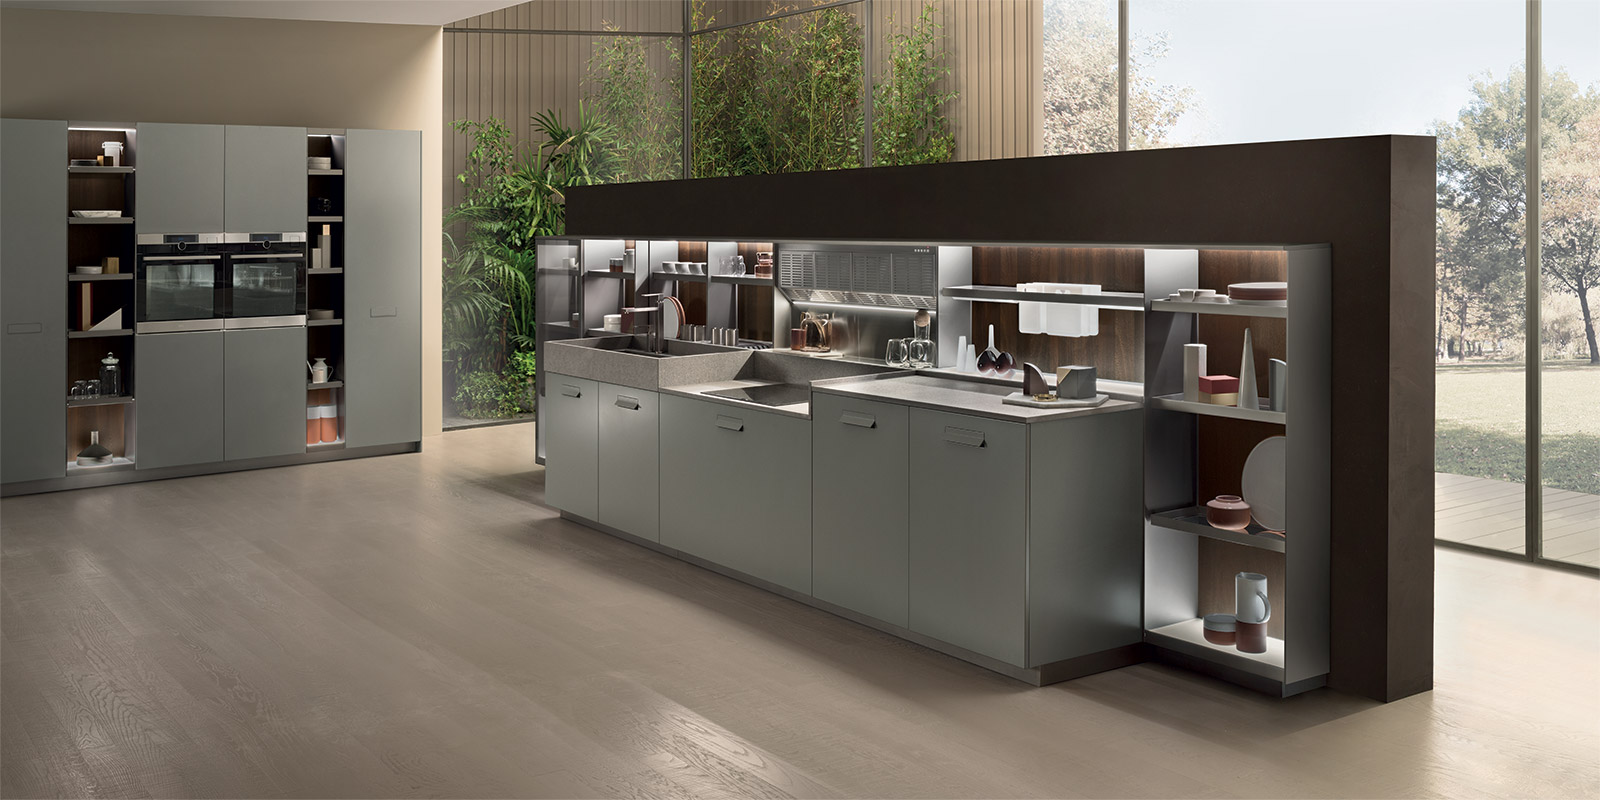 Bagno Design Kitchens : Cucine ernestomeda roma